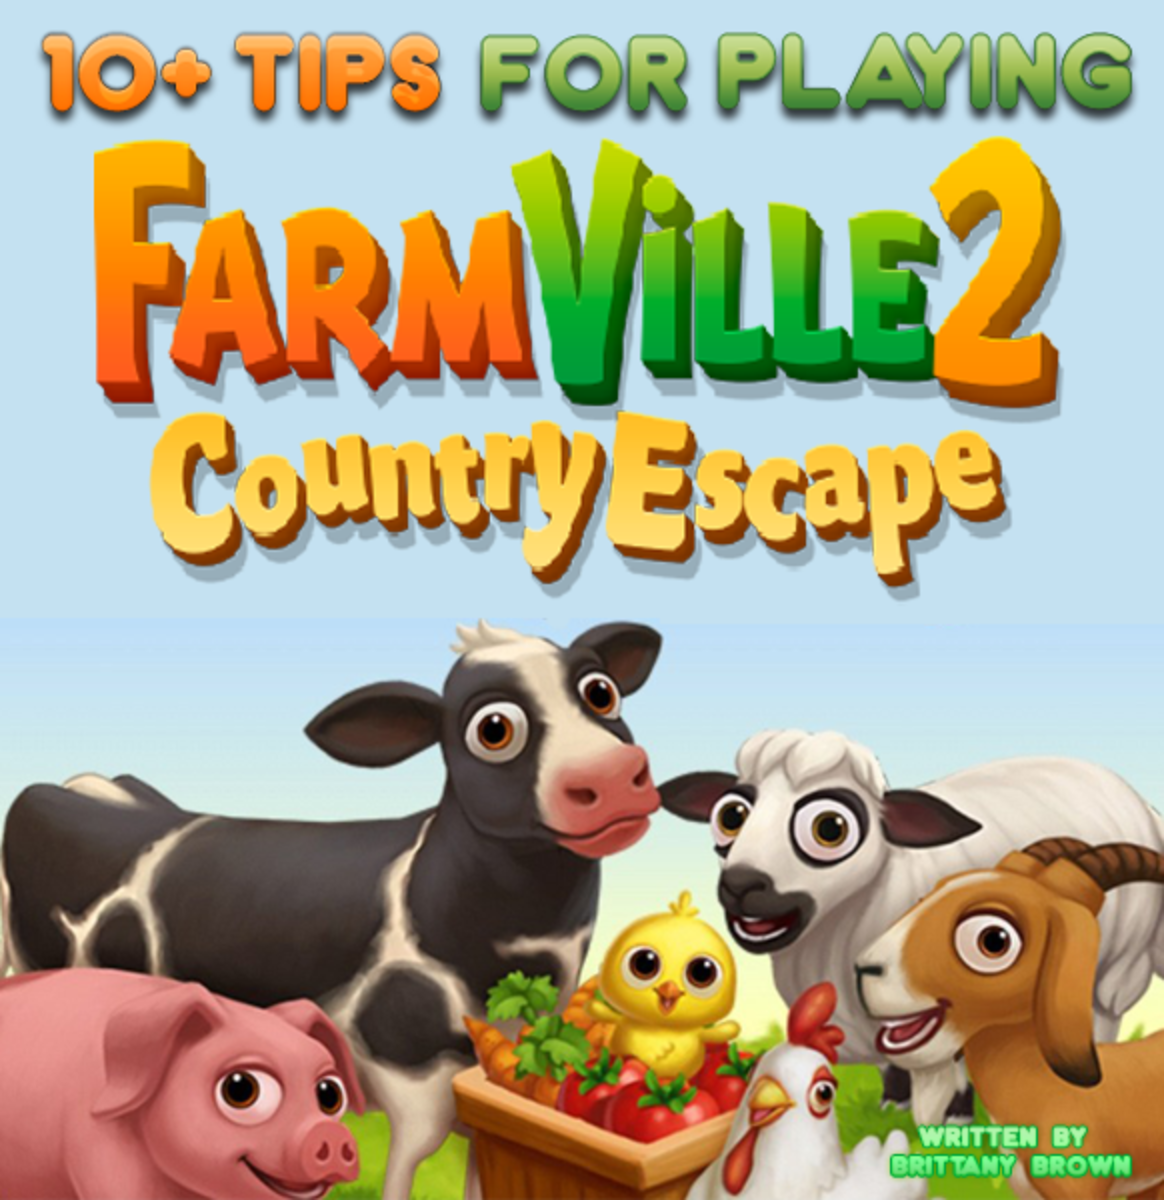 10+ Tips for Playing